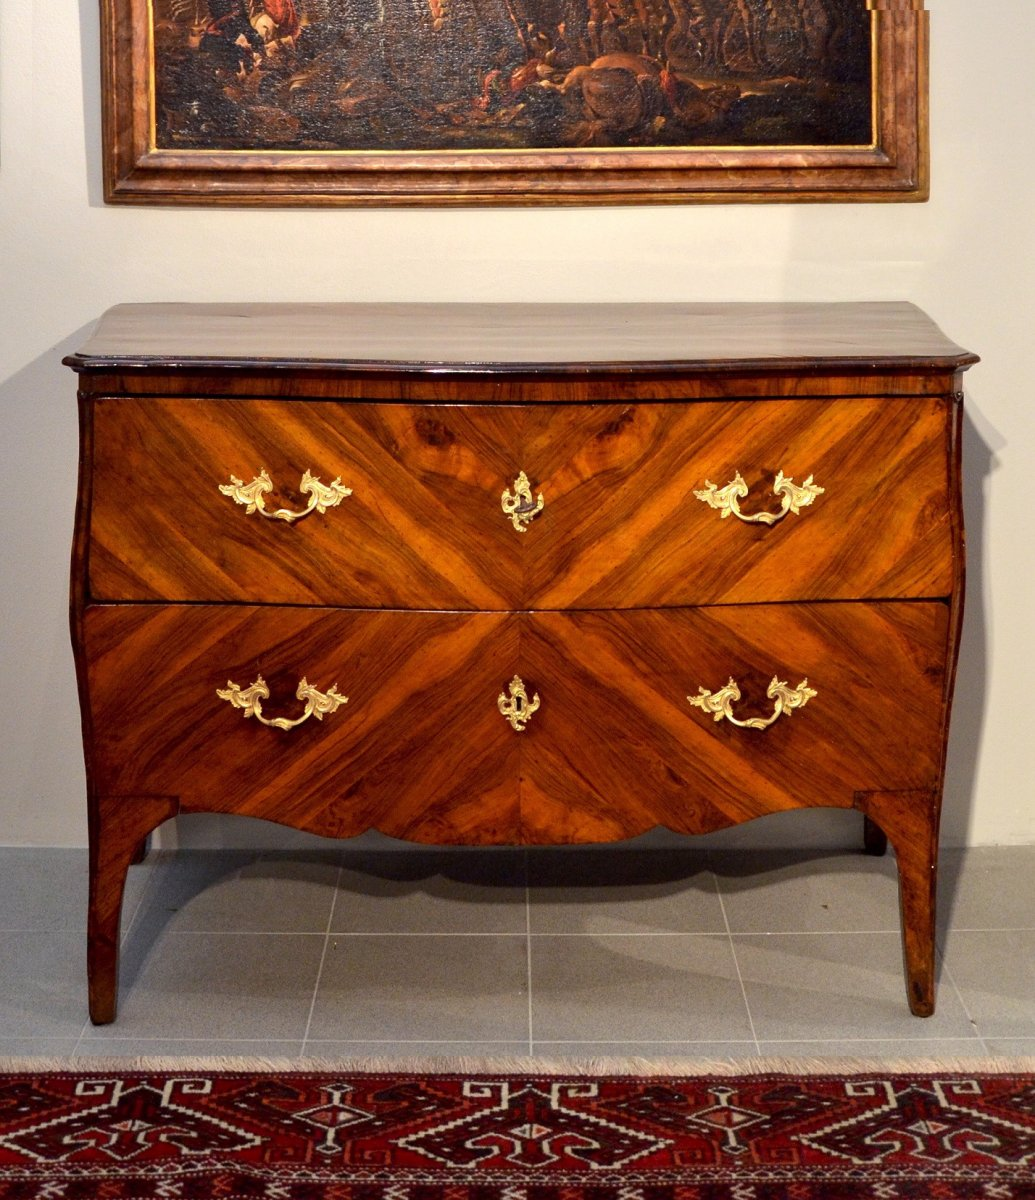 Splendid Louis XV Commode With Two Drawers, Genoa, First Half Of The Eighteenth Century